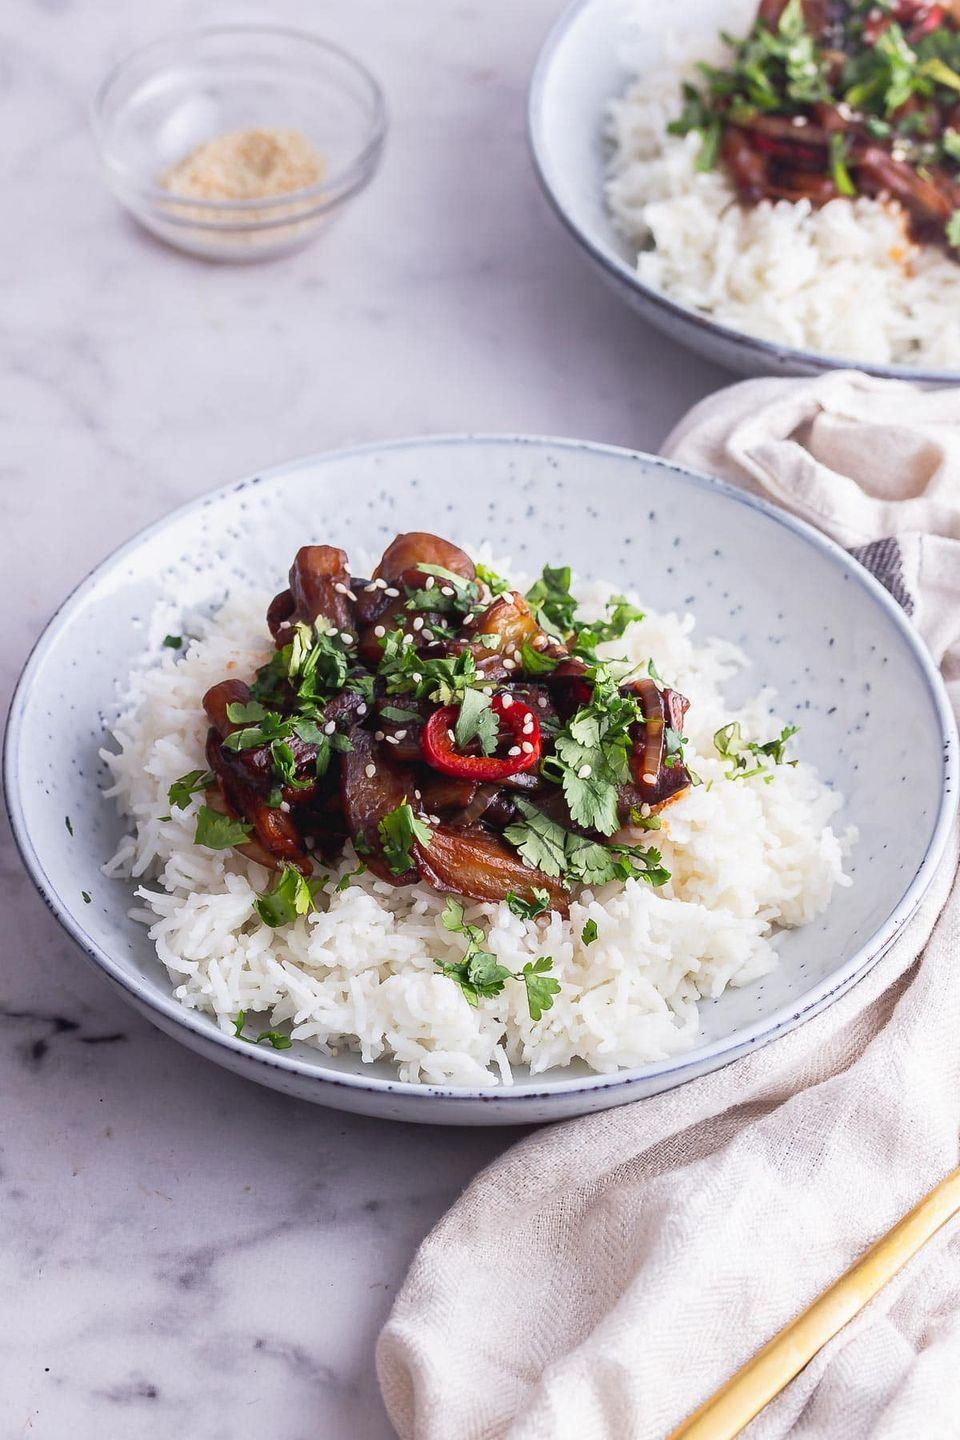 """<p>This recipe features a spicy stir fried aubergine that's made with a sticky soy sauce glaze and thinly sliced onion and chilli. The aubergine is cooked until super tender and served over rice.</p><p>Get the <a href=""""https://thecookreport.co.uk/stir-fried-aubergine/"""" rel=""""nofollow noopener"""" target=""""_blank"""" data-ylk=""""slk:Stir Fried Aubergine with Chilli"""" class=""""link rapid-noclick-resp"""">Stir Fried Aubergine with Chilli</a> recipe.</p><p>Recipe from <a href=""""https://thecookreport.co.uk/"""" rel=""""nofollow noopener"""" target=""""_blank"""" data-ylk=""""slk:The Cook Report"""" class=""""link rapid-noclick-resp"""">The Cook Report</a>. </p>"""